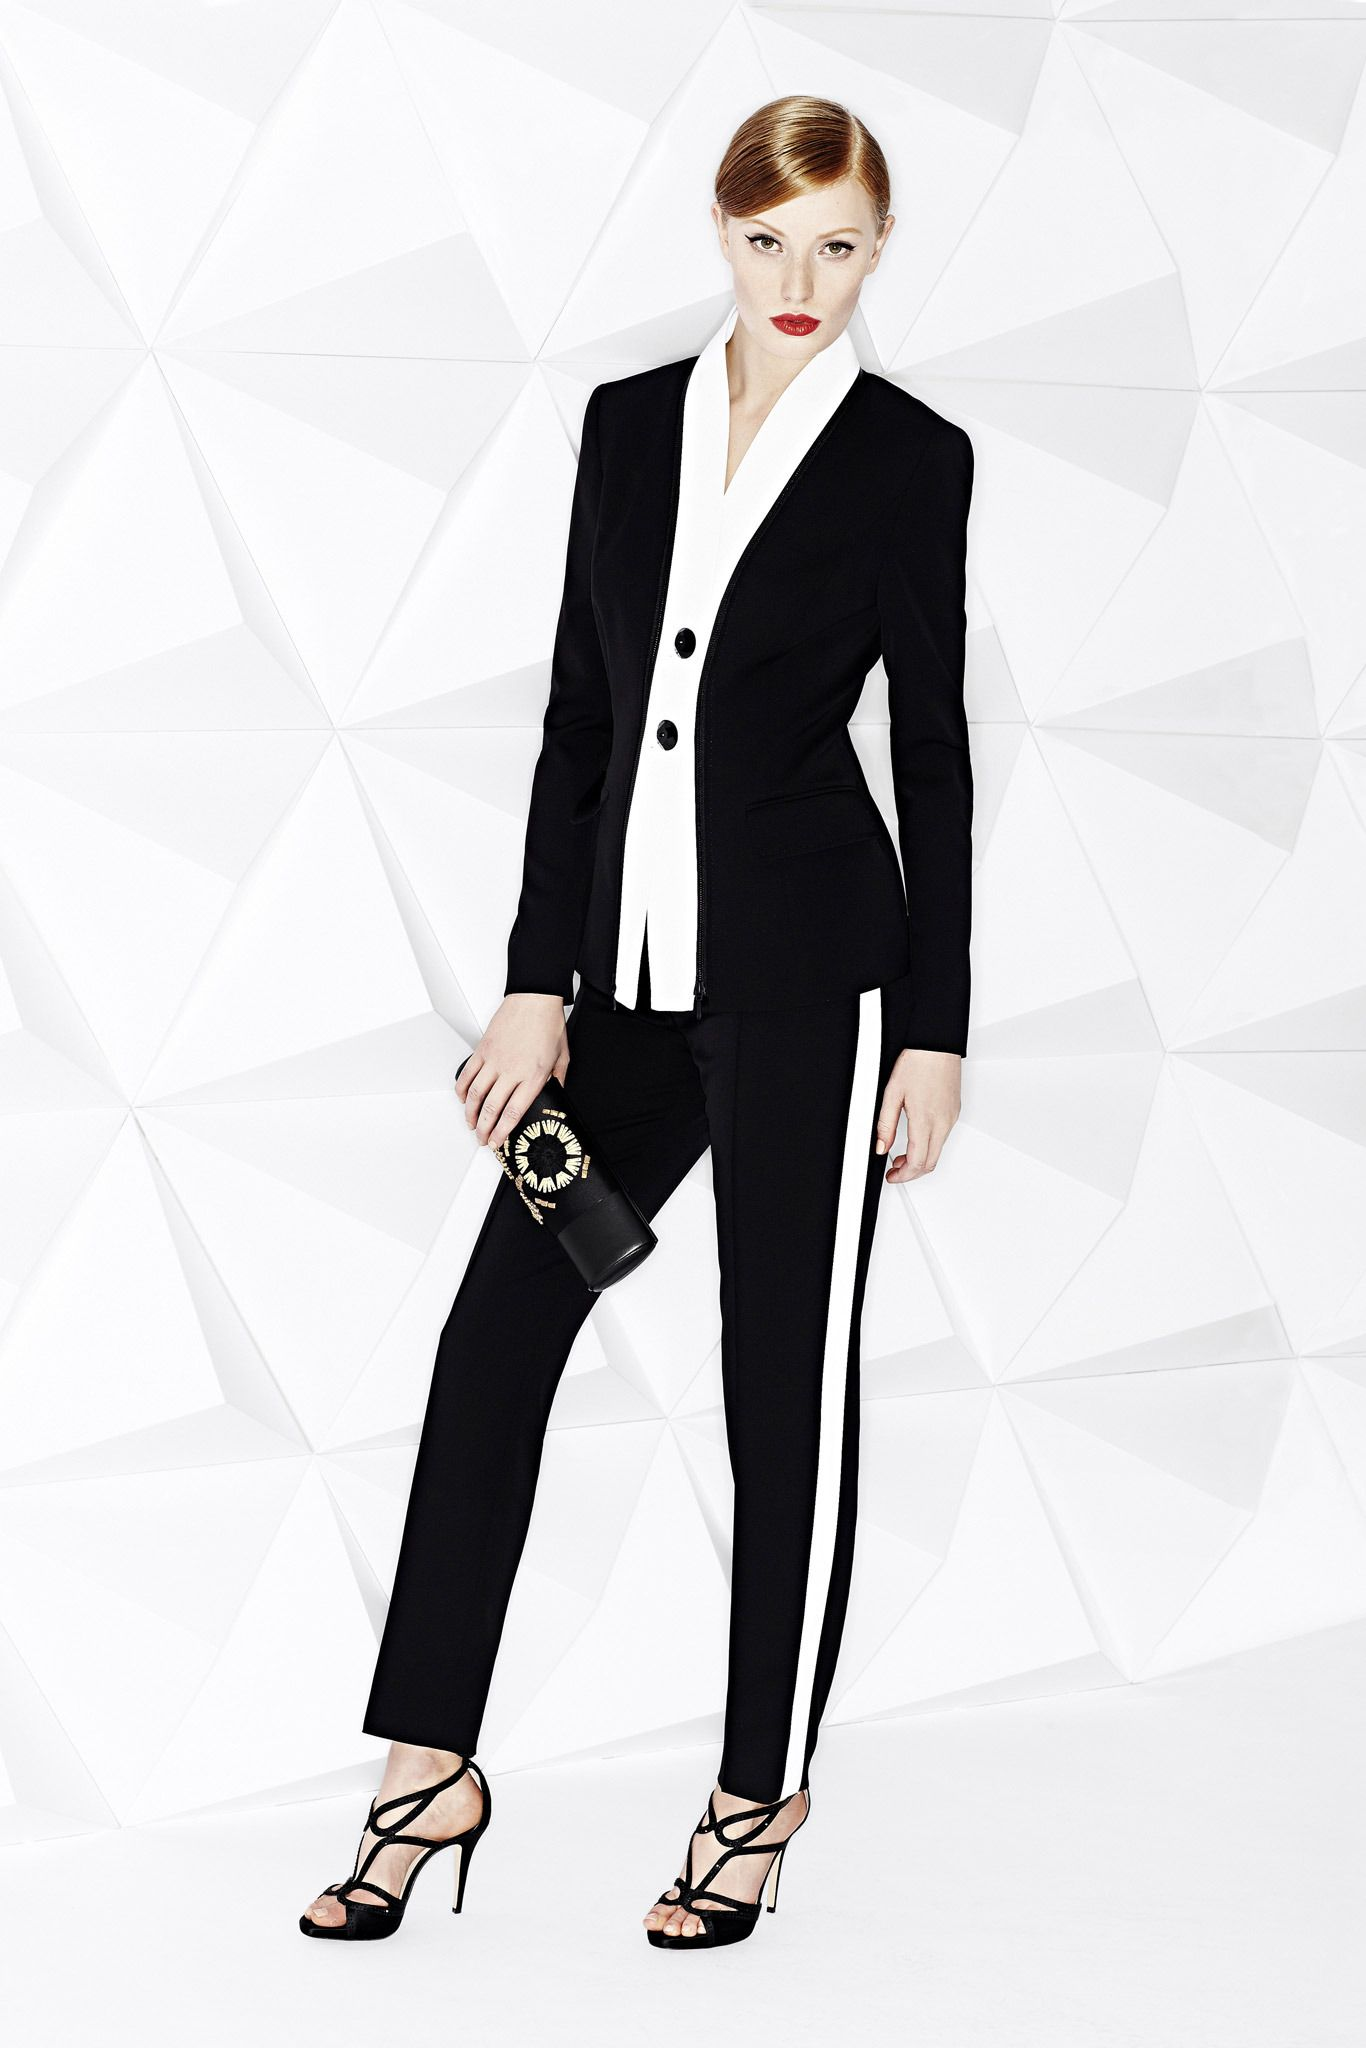 There is nothing androgynous about this Escada Resort 2015 suit. More on the suit trend and other top trends here: http://balharbourshops.com/fashion/trend-report/resort-2015/this-suits-you